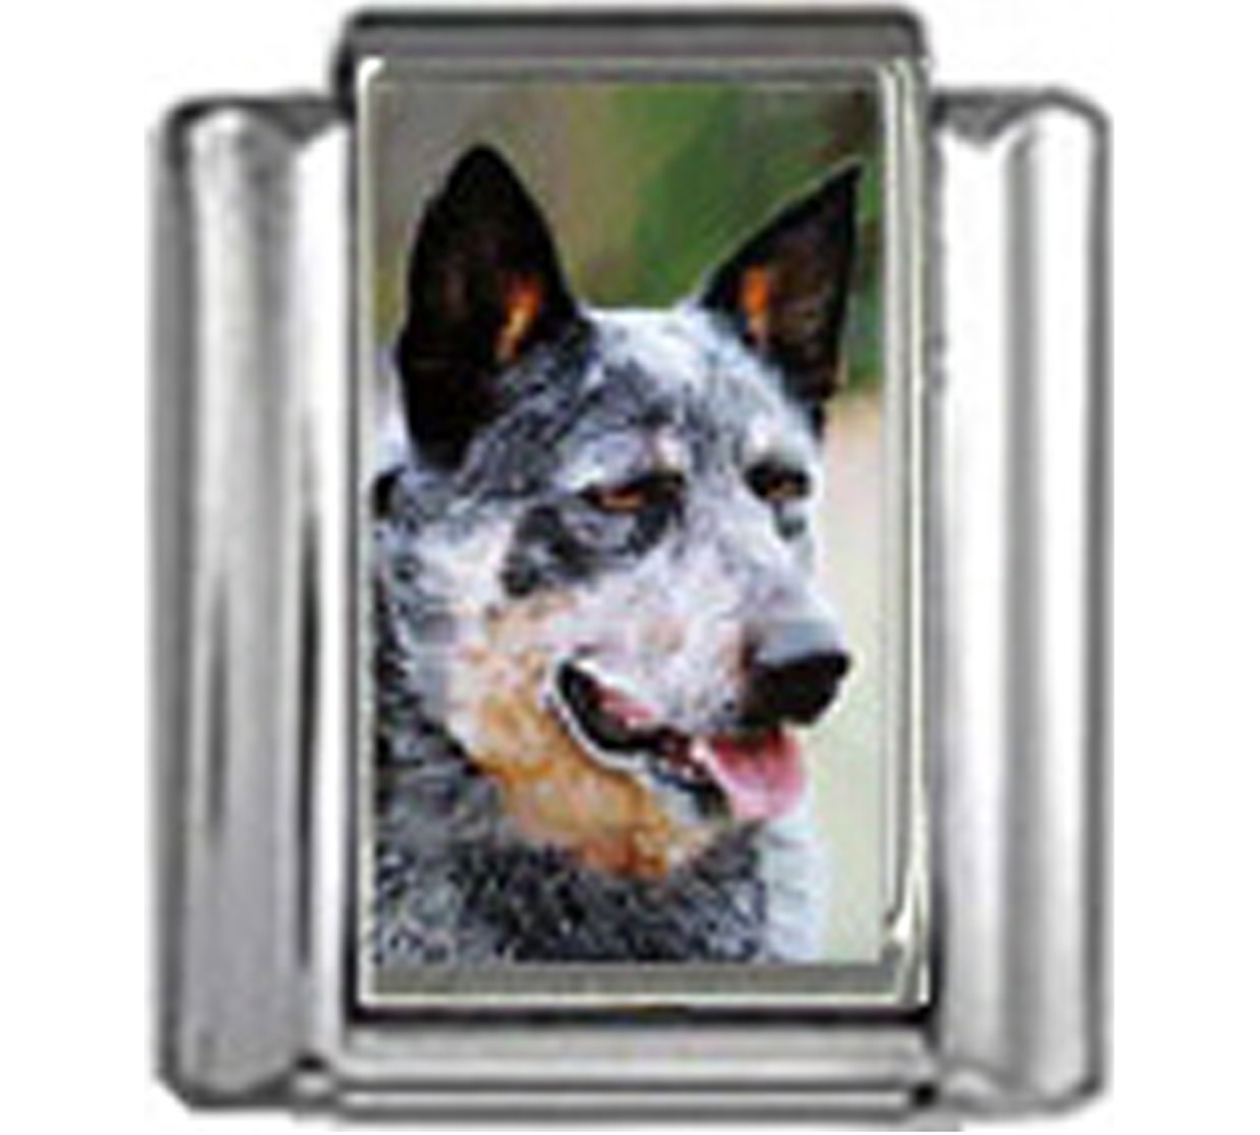 DG042-Australian-Cattle-Dog-3